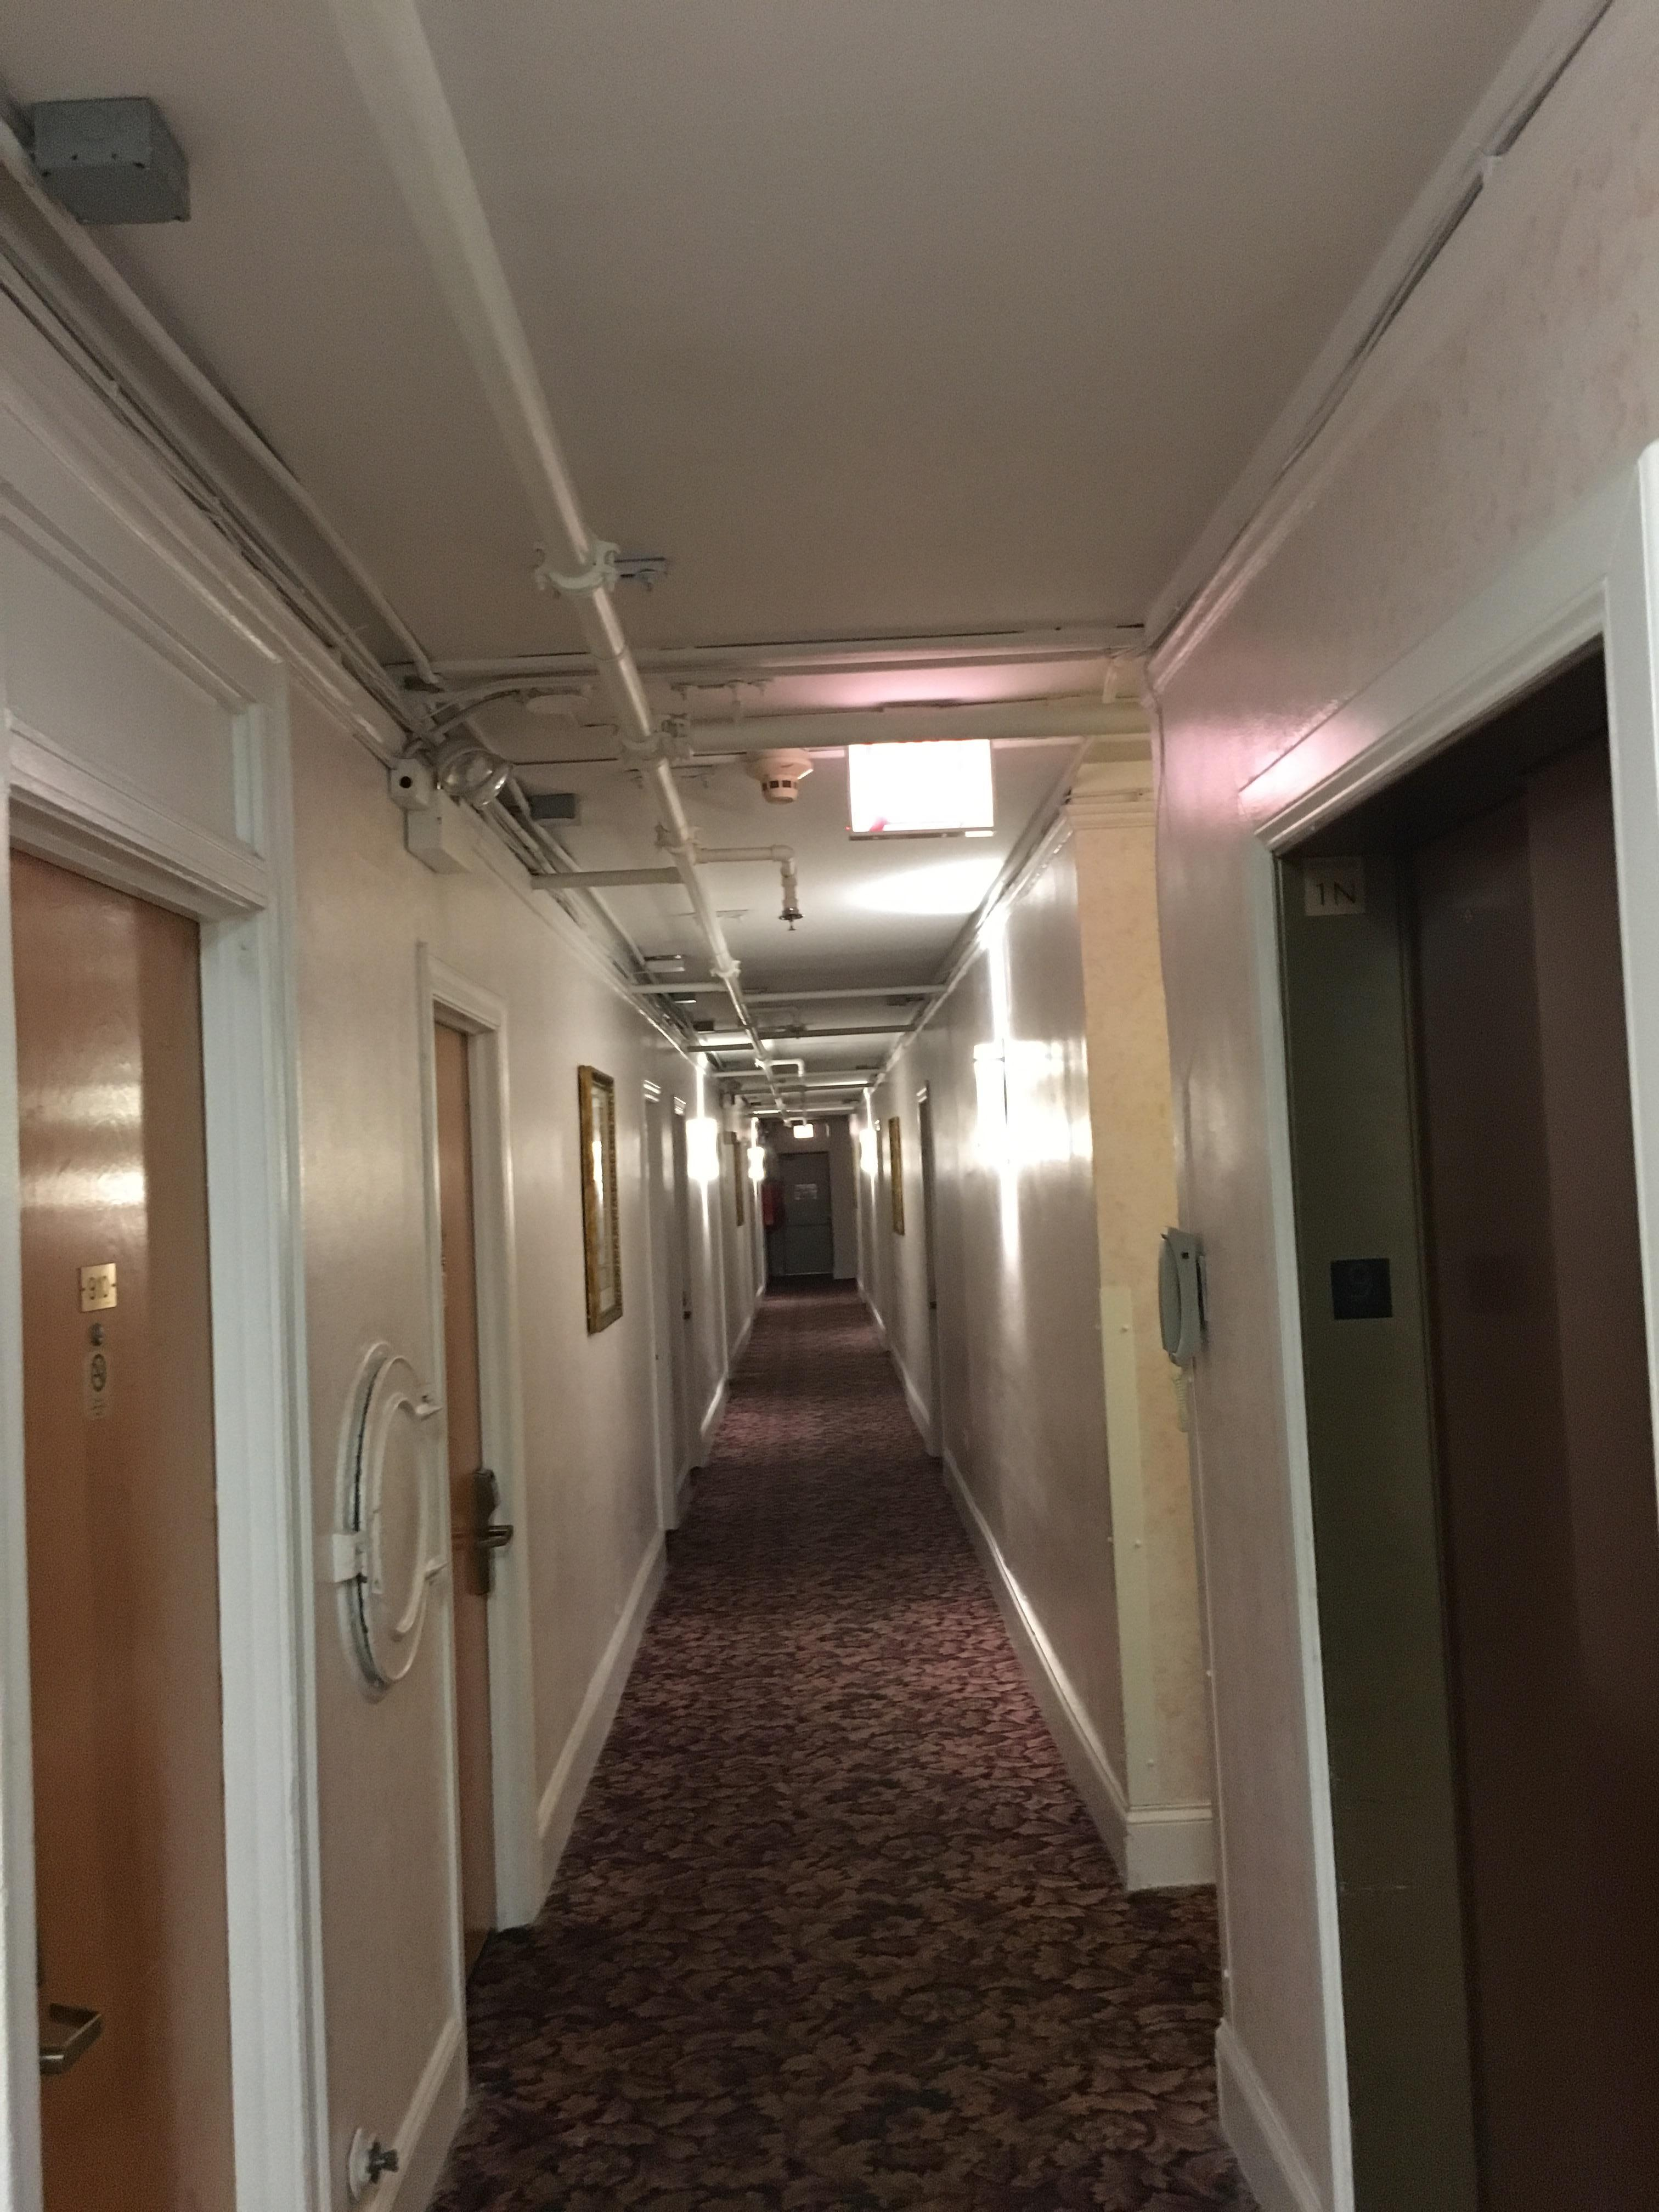 Hallways. Appears to be an old apartment